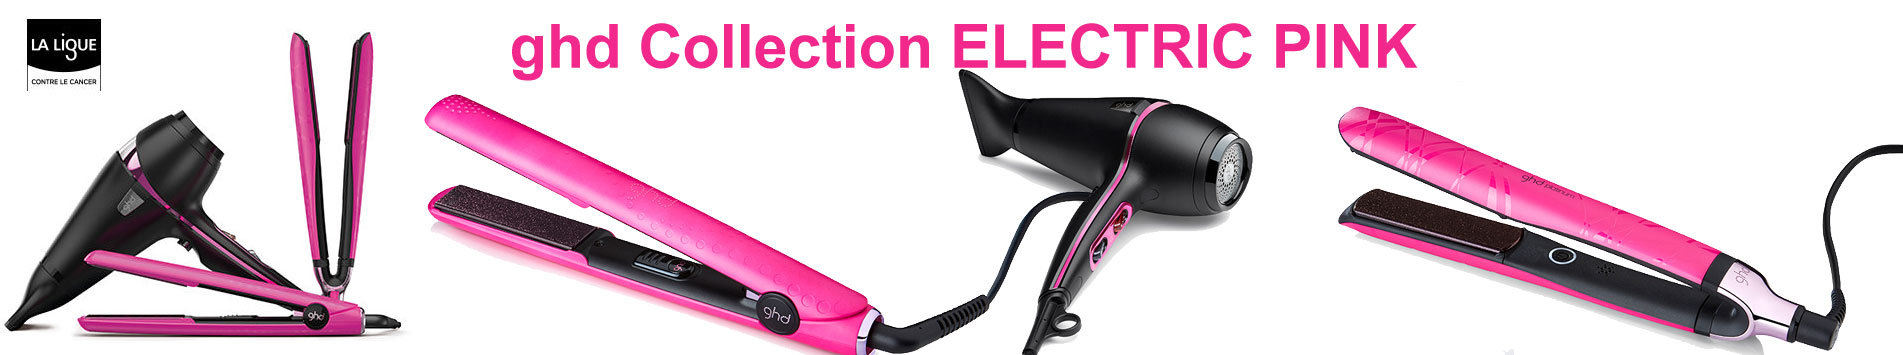 5496572ghd-electric-pink-collectio